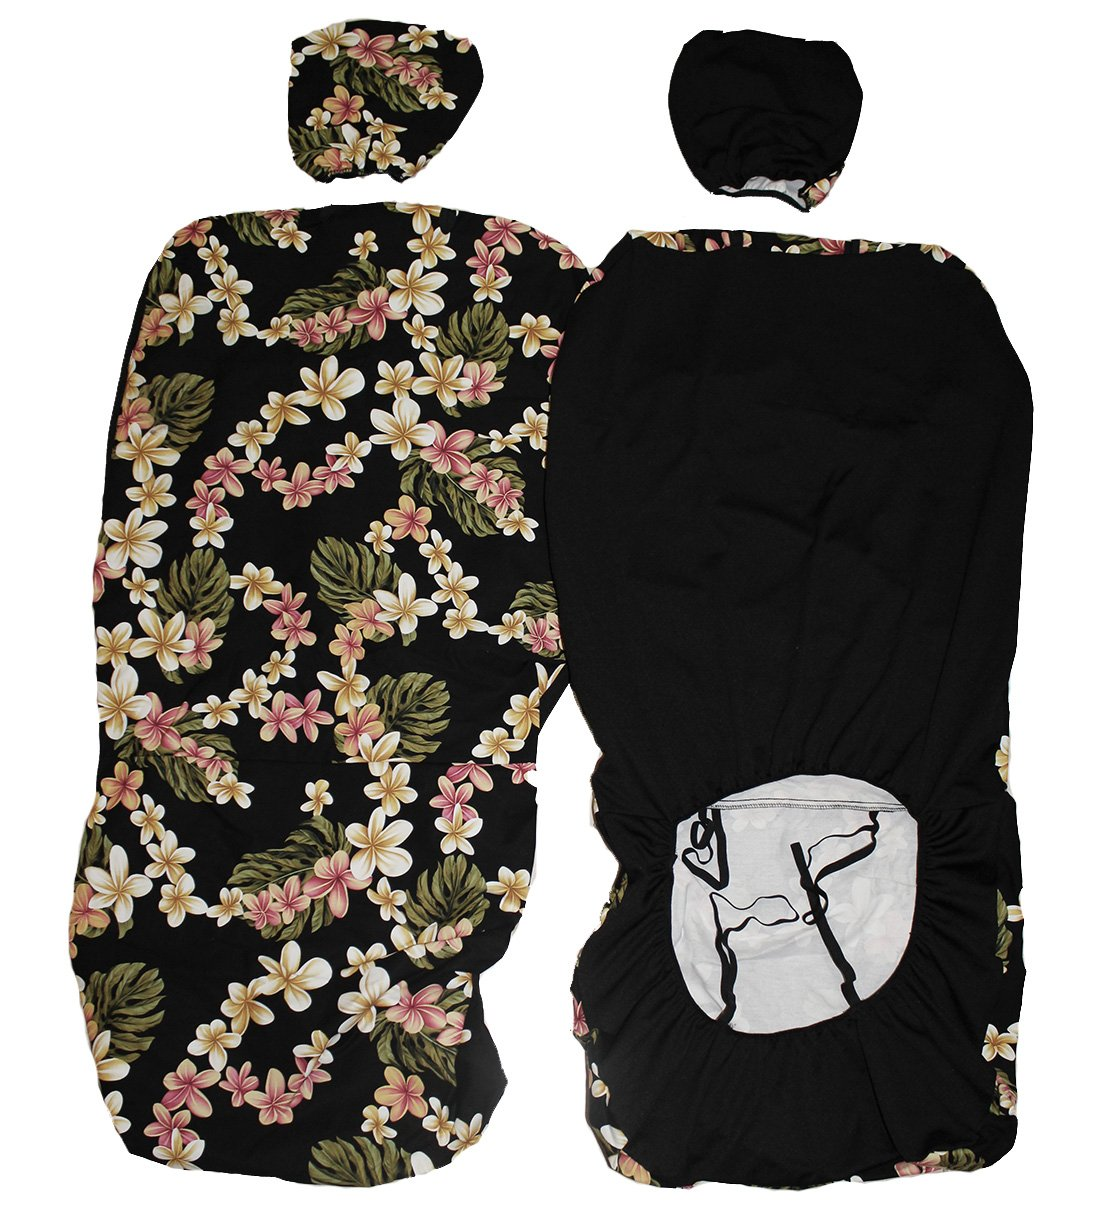 Hawaiian Car Seat Covers >> Hawaiian Car Seat Cover With Separated Headrest Black Plumeria Set Of 2 Front Bucket Seat Covers